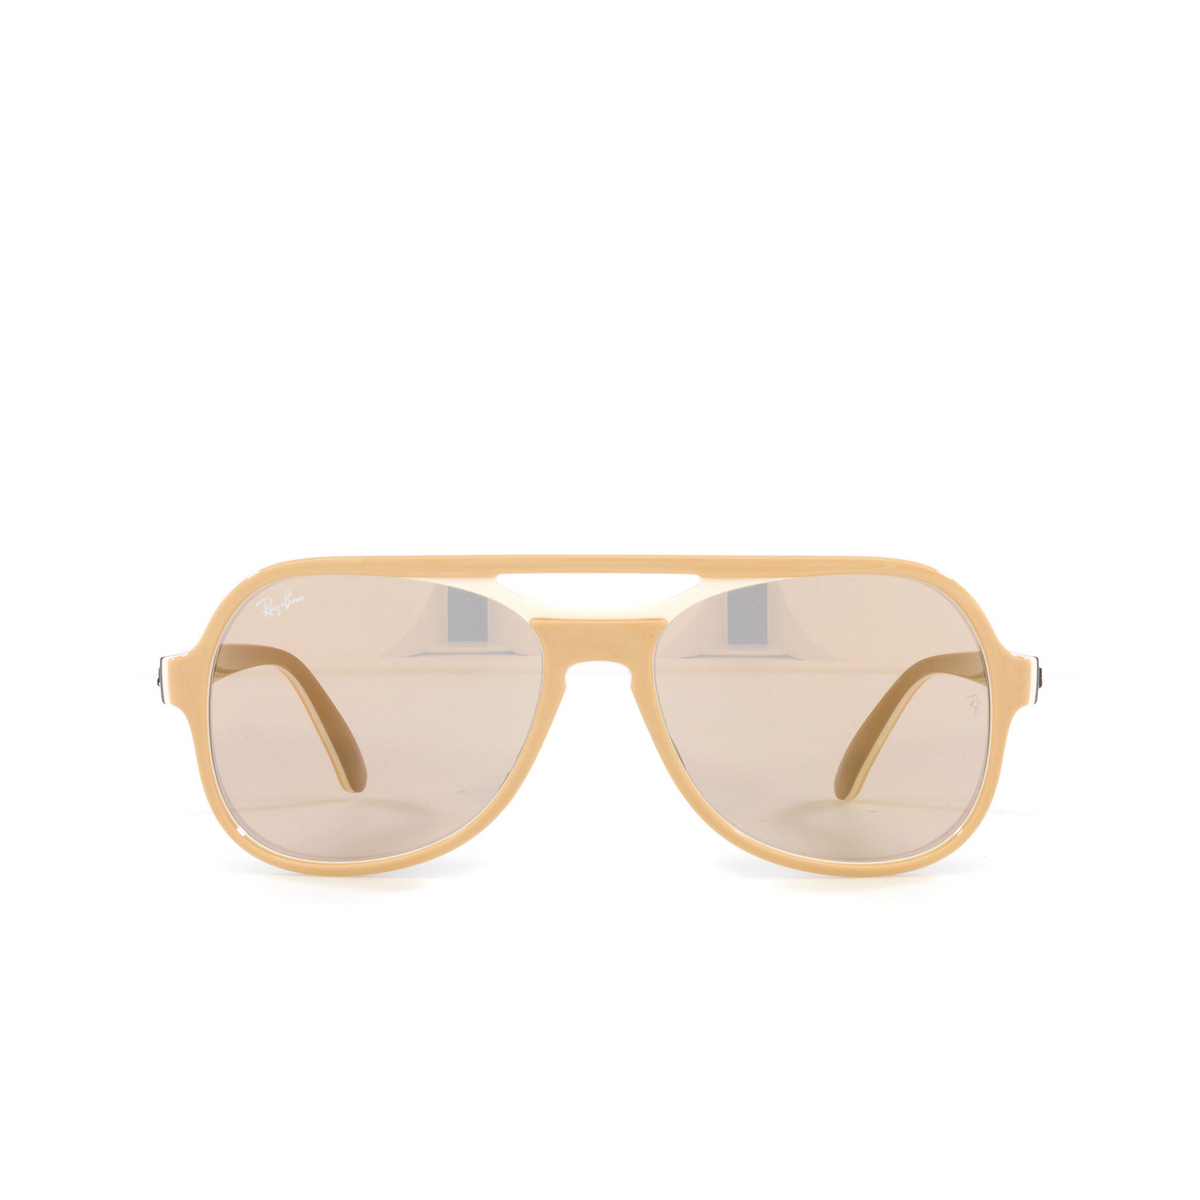 Ray-Ban® Aviator Sunglasses: Powderhorn RB4357 color Light Brown Creamy Blue 6551B3 - front view.